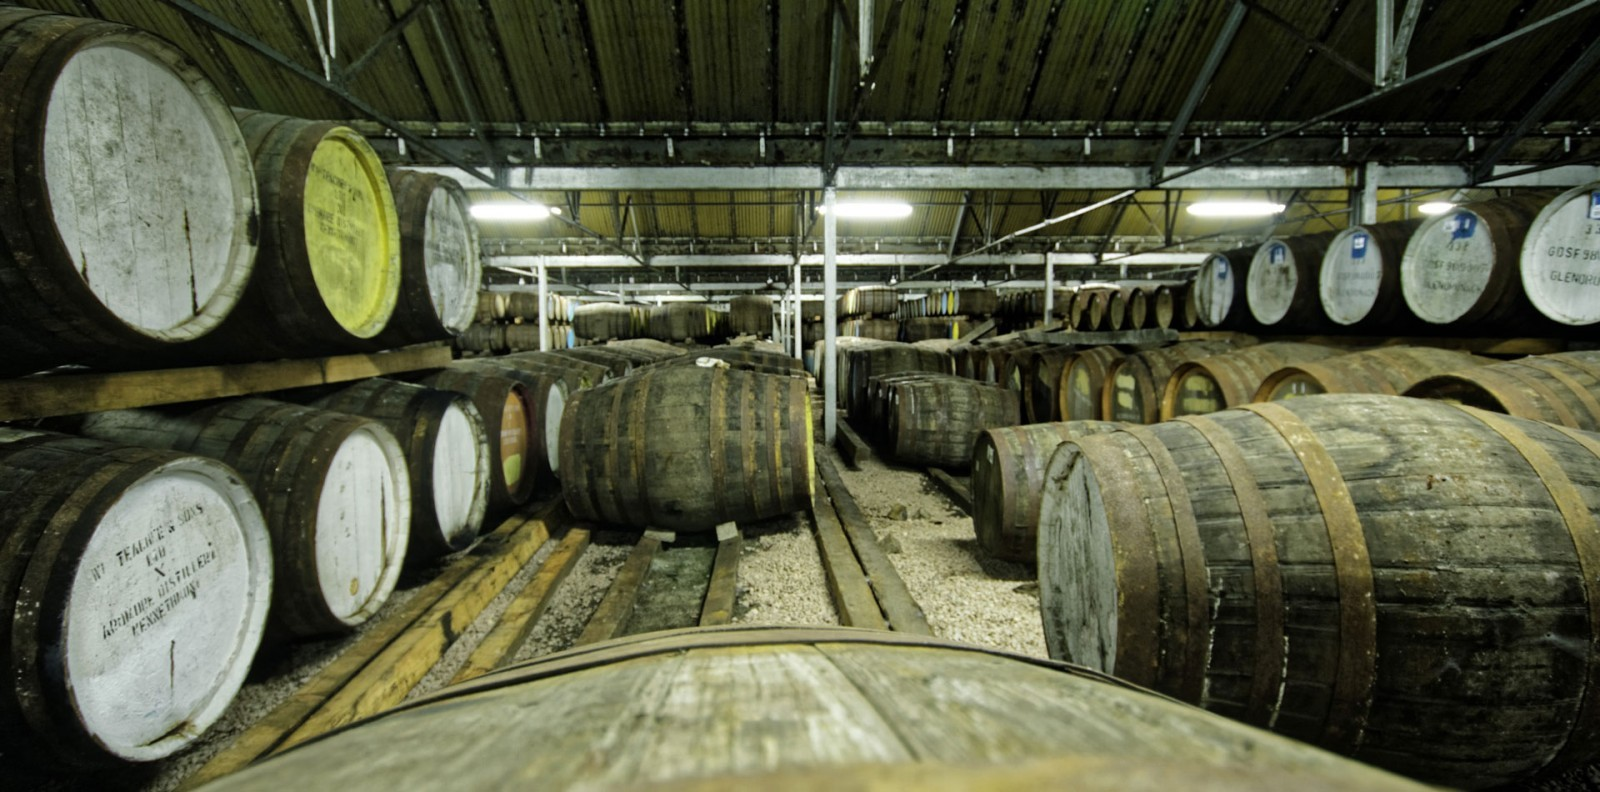 GlenDronach Warehouse